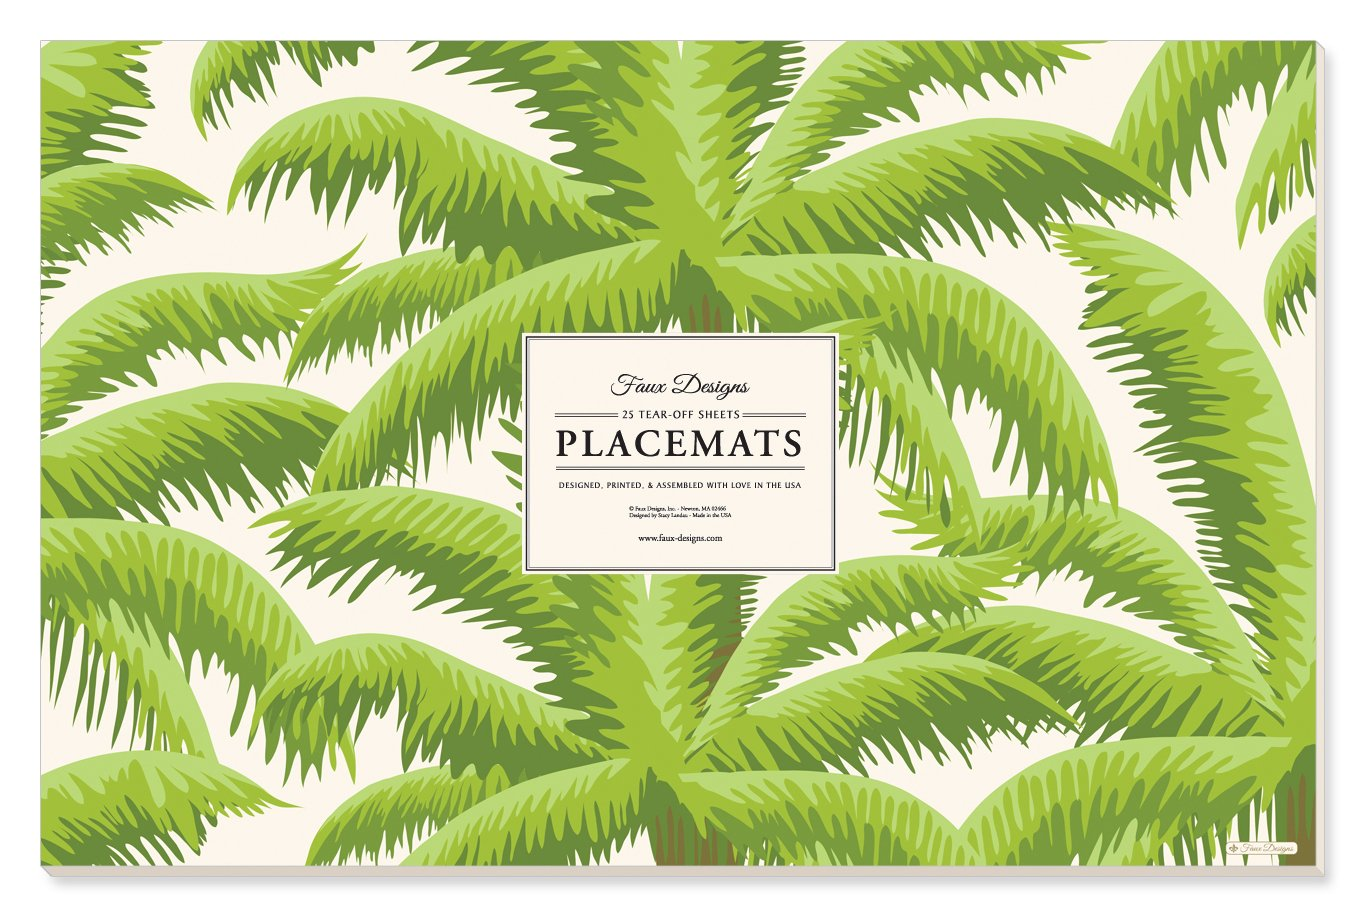 Faux Designs Paper Placemats - Palm